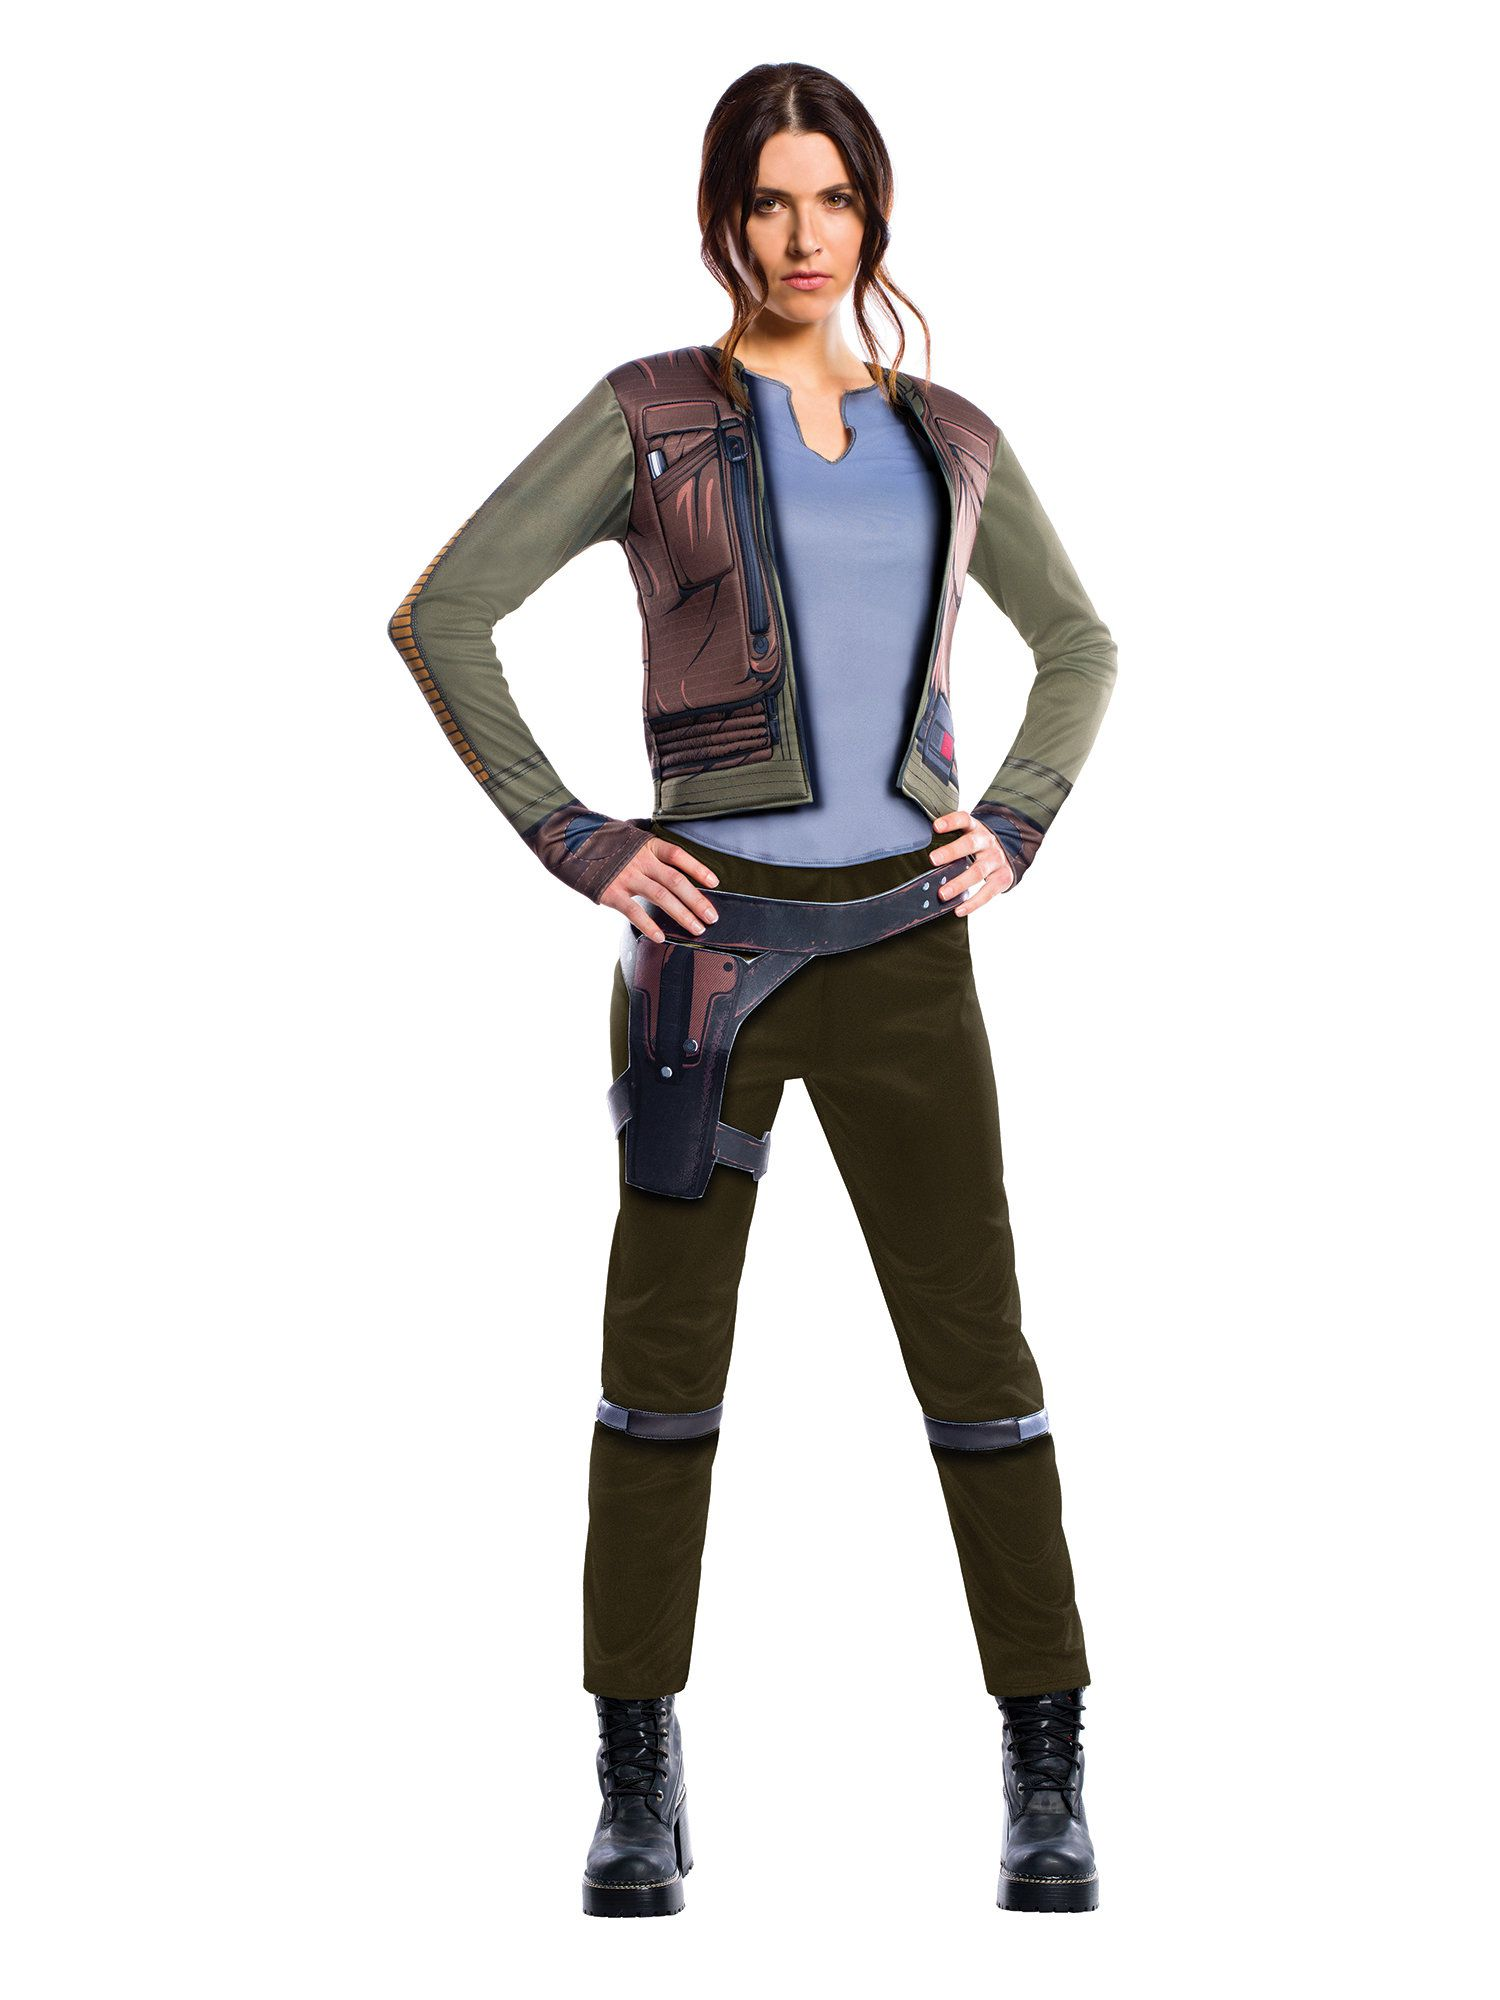 Star wars rogue 1 jyn erso deluxe womens costume womens costumes star wars rogue 1 jyn erso deluxe womens costume solutioingenieria Image collections